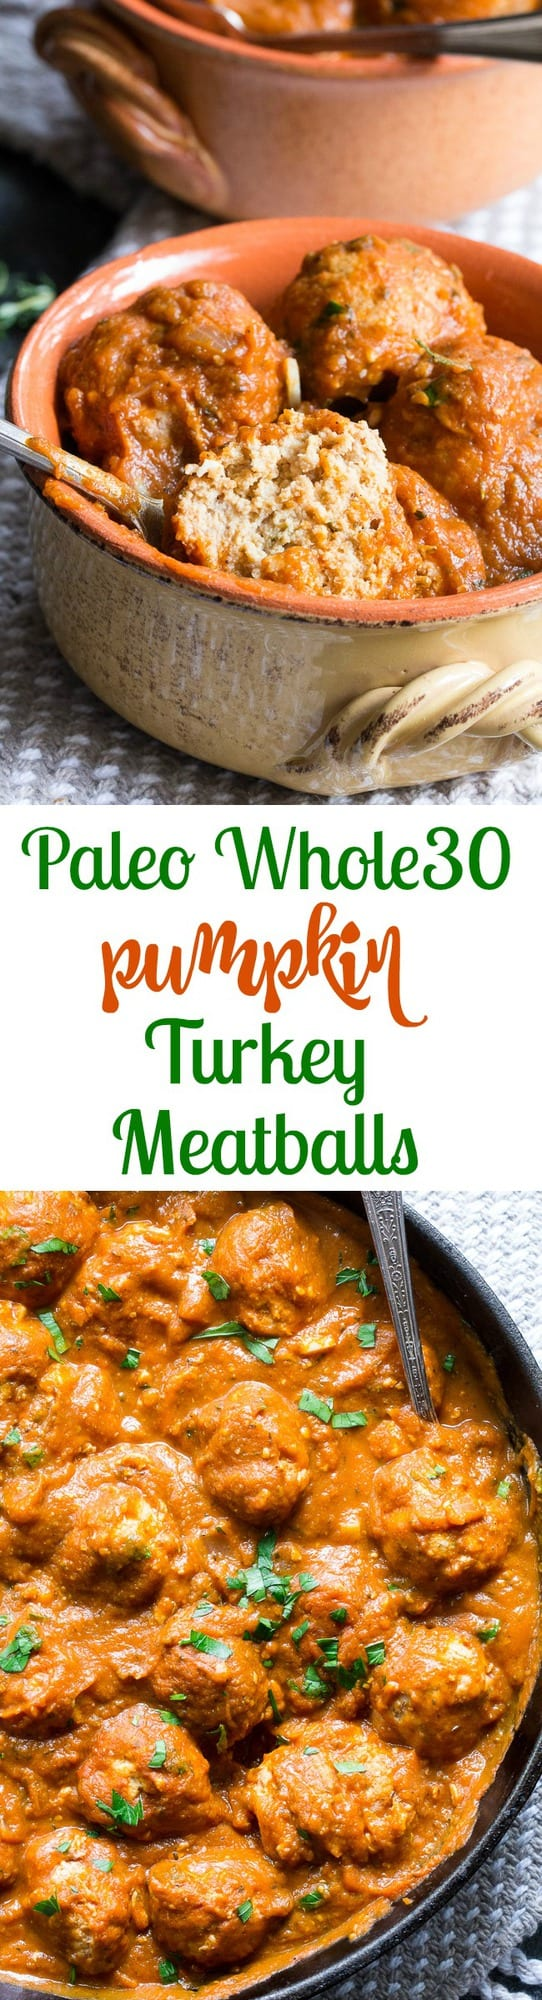 Savory pumpkin turkey meatballs in a creamy, dairy-free, paleo and Whole30 harvest tomato sauce with pumpkin and spices.  Makes a cozy, healthy and filling dinner and the leftovers are great for a next-day lunch.  Gluten-free, grain-free, kid approved and easy to make!